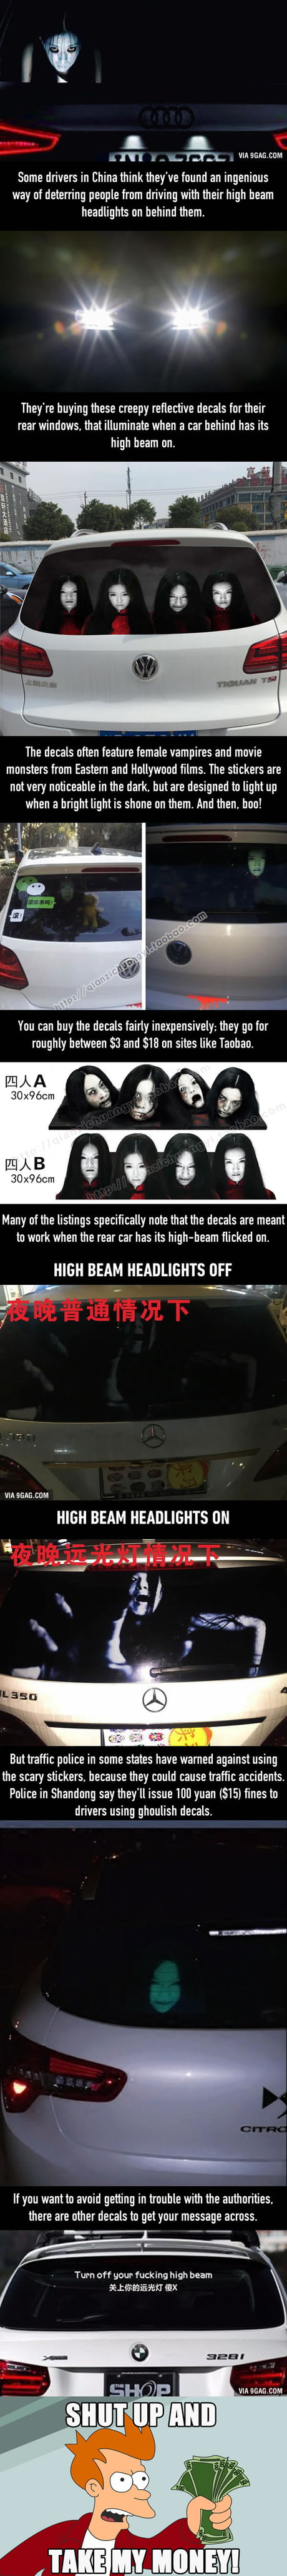 Chinese Drivers Try To Deter High-Beamers With Scary